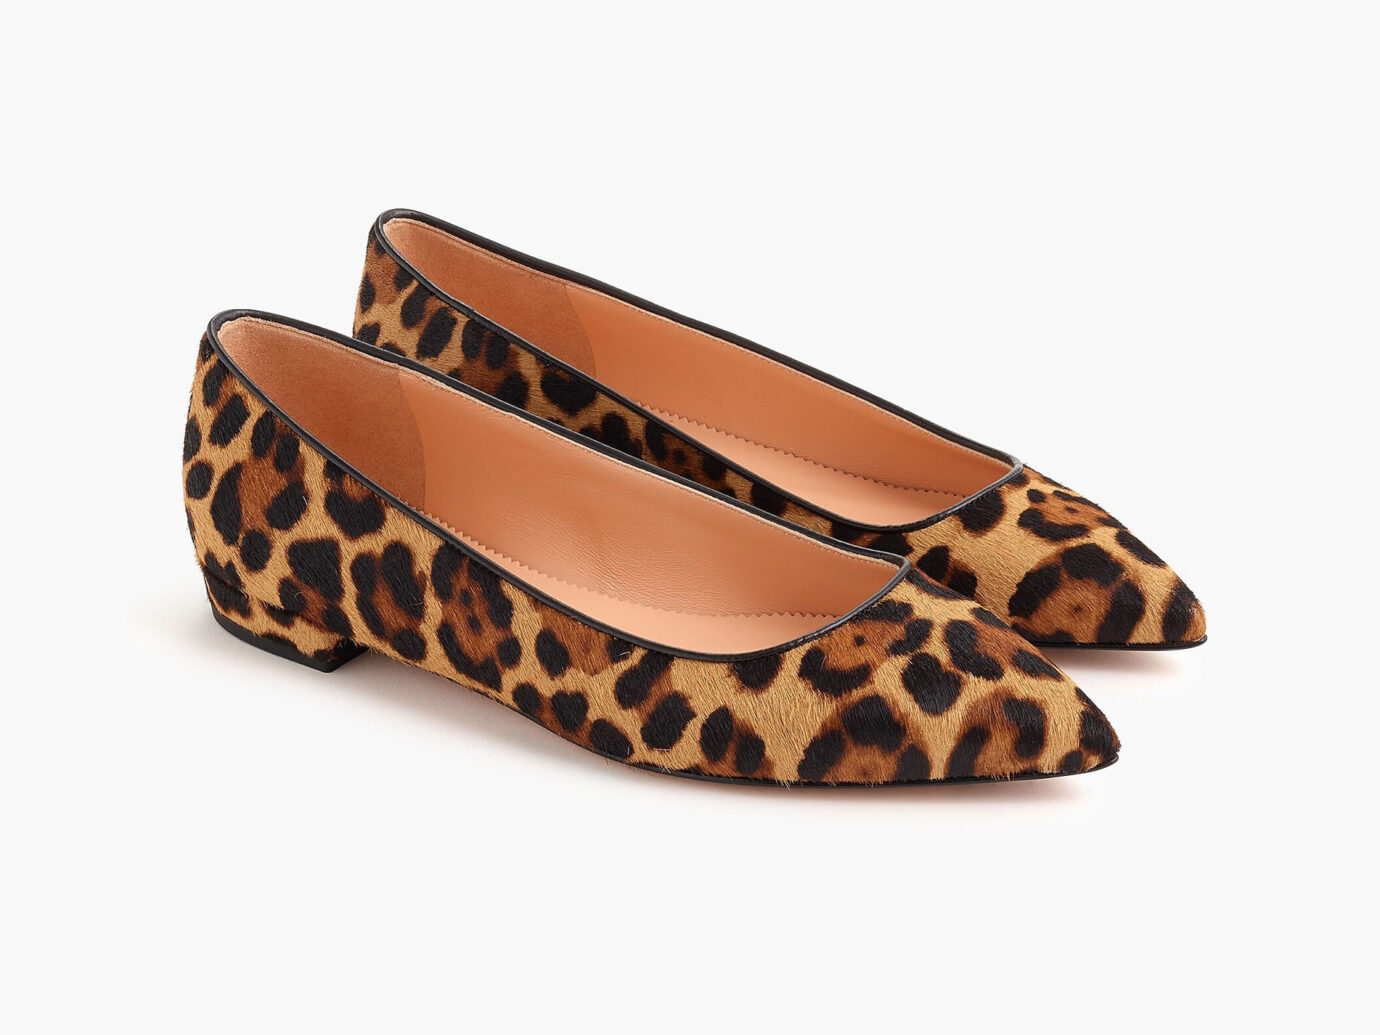 J.Crew Pointed-Toe Flats in Leopard Calf Hair